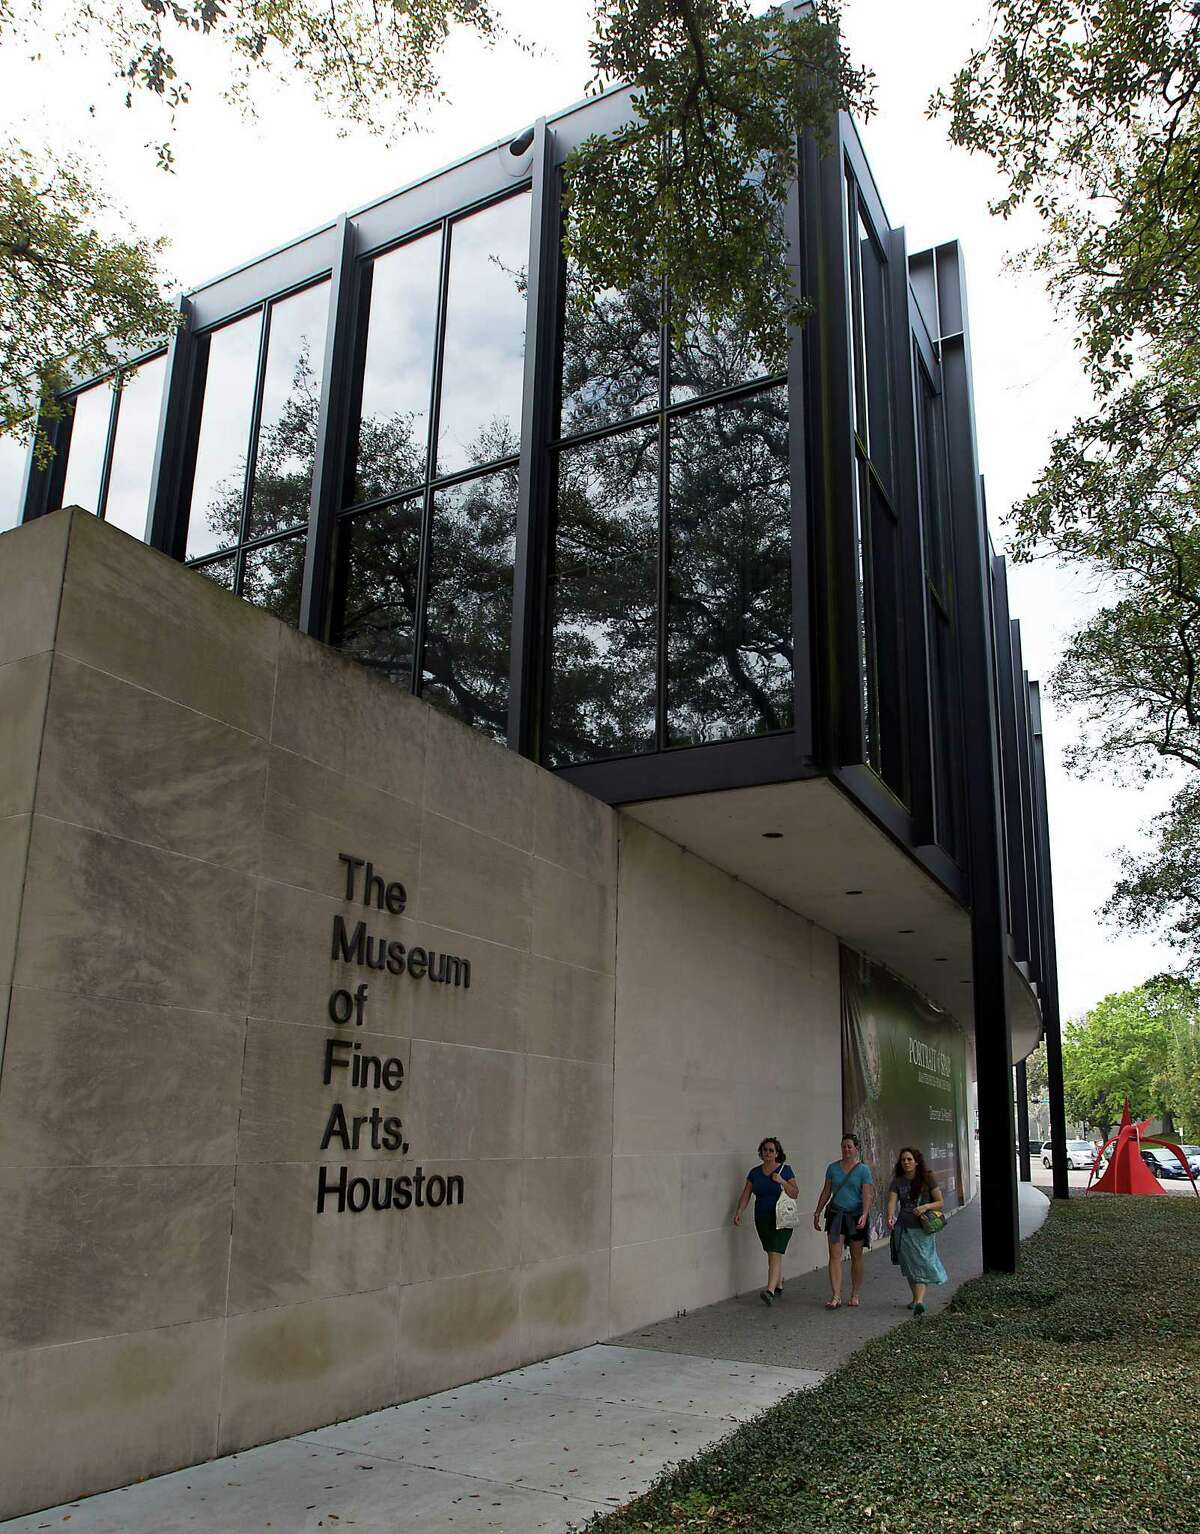 Museum of Fine Arts, Houston: Luminous watercolors by John Singer Sargent, a stunning retrospective of paintings and collages by Georges Braque (who invented Cubism and collage with Picasso but kept at them longer), exquisite permanent collections and James Turrell's mind-bending tunnel,